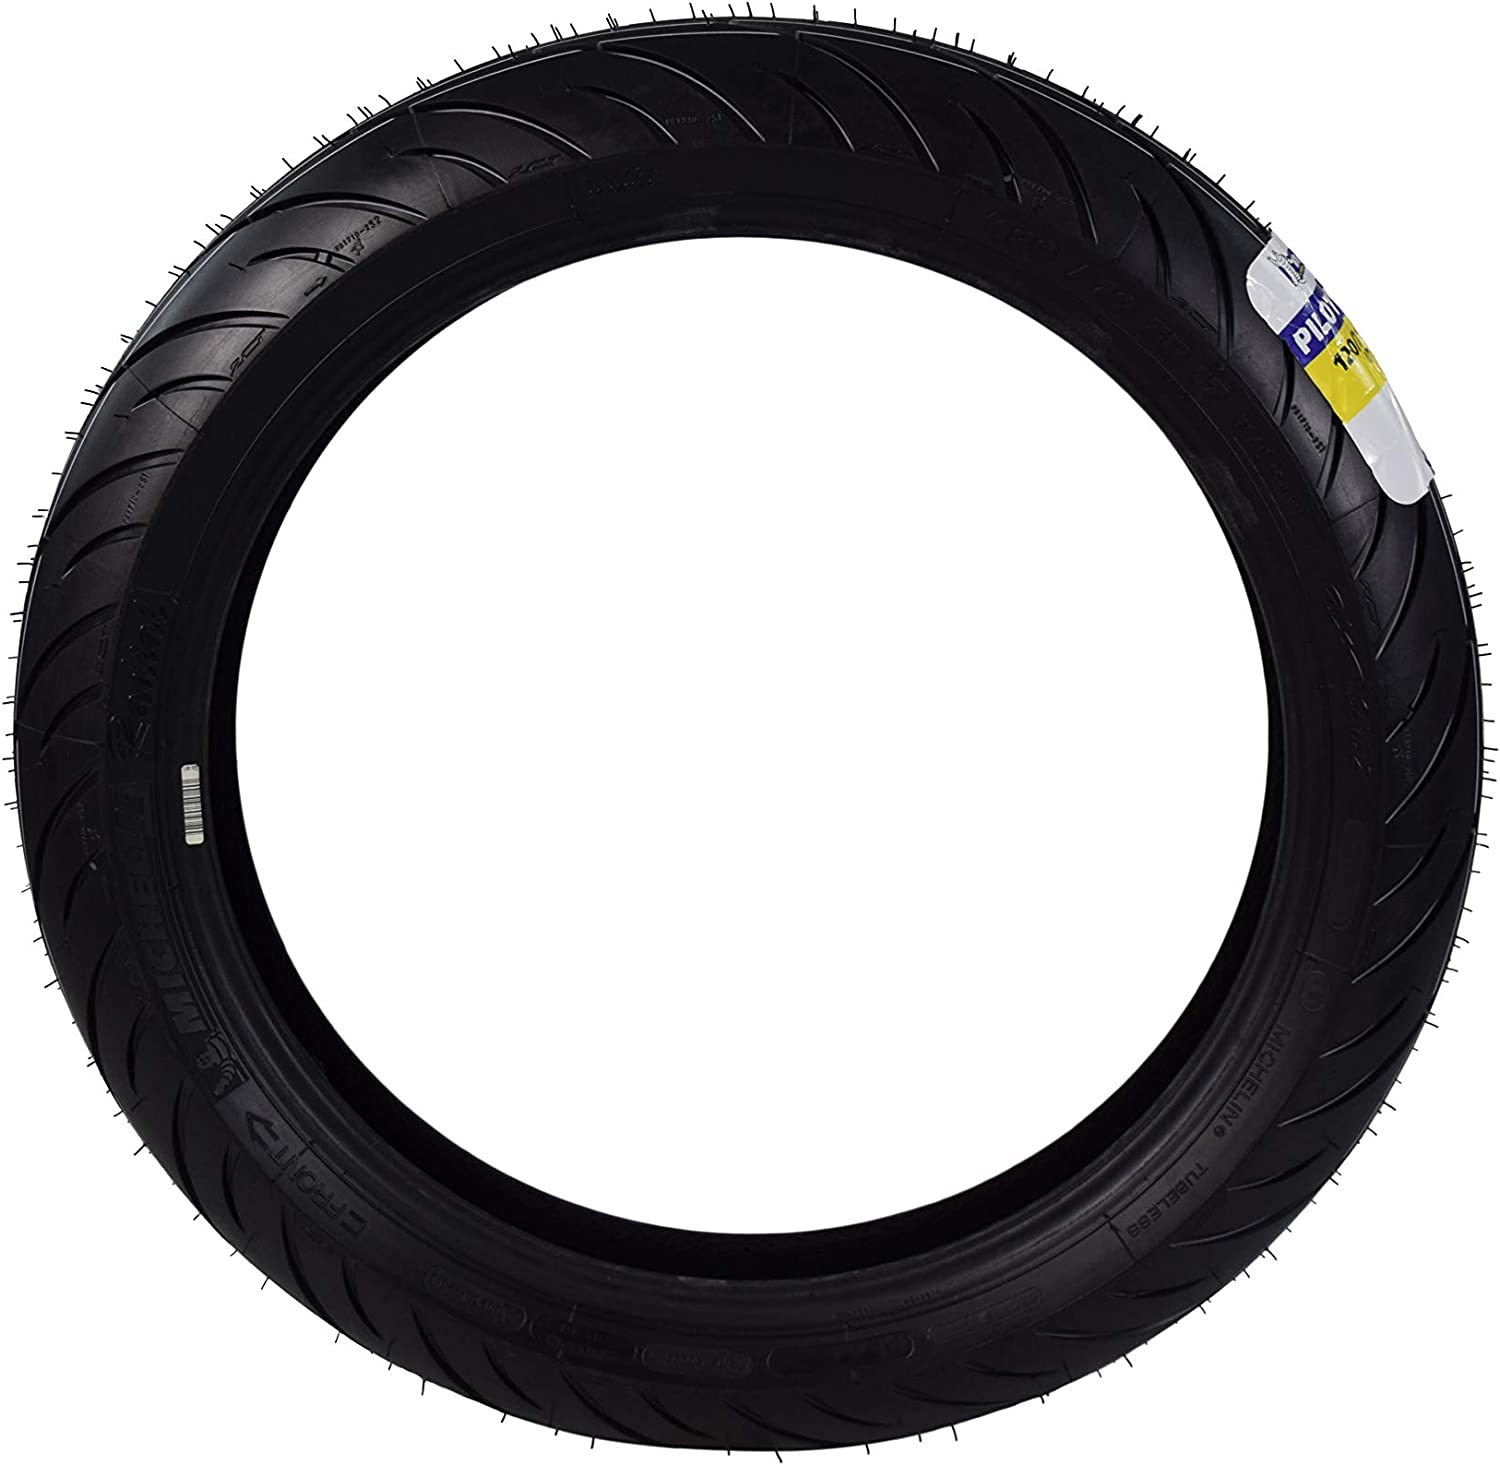 120//70ZR17 F 180//55ZR17 R Michelin Pilot Road 2 Sport Touring Motorcycle Front and Rear Tires Radial Sport Bike Road II 120//70-17 180//55-17